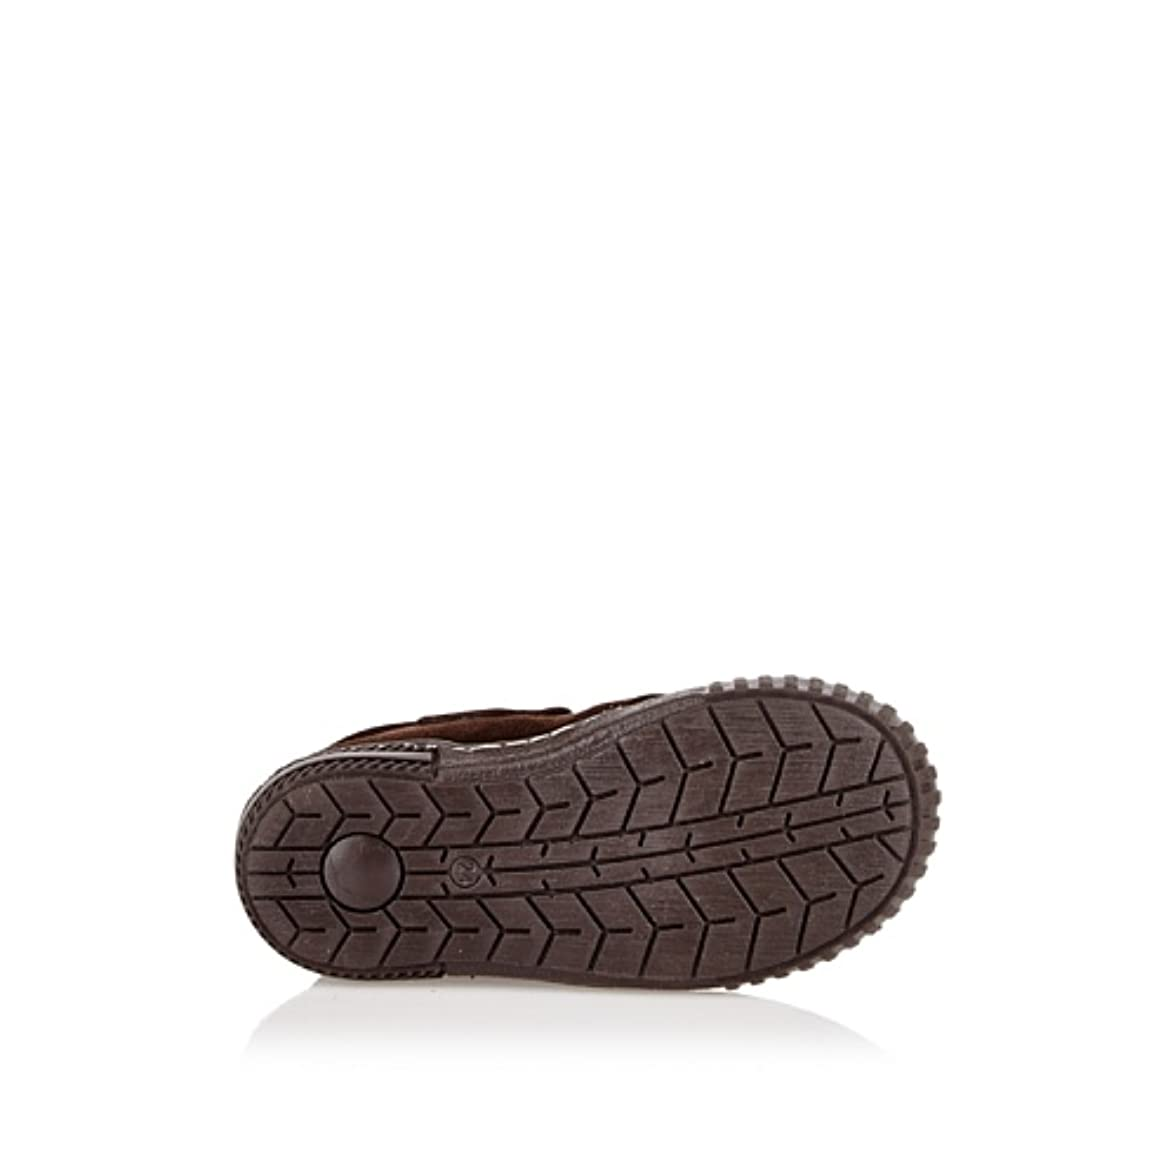 Venturini Alberto Sneakers Beloved Bianca